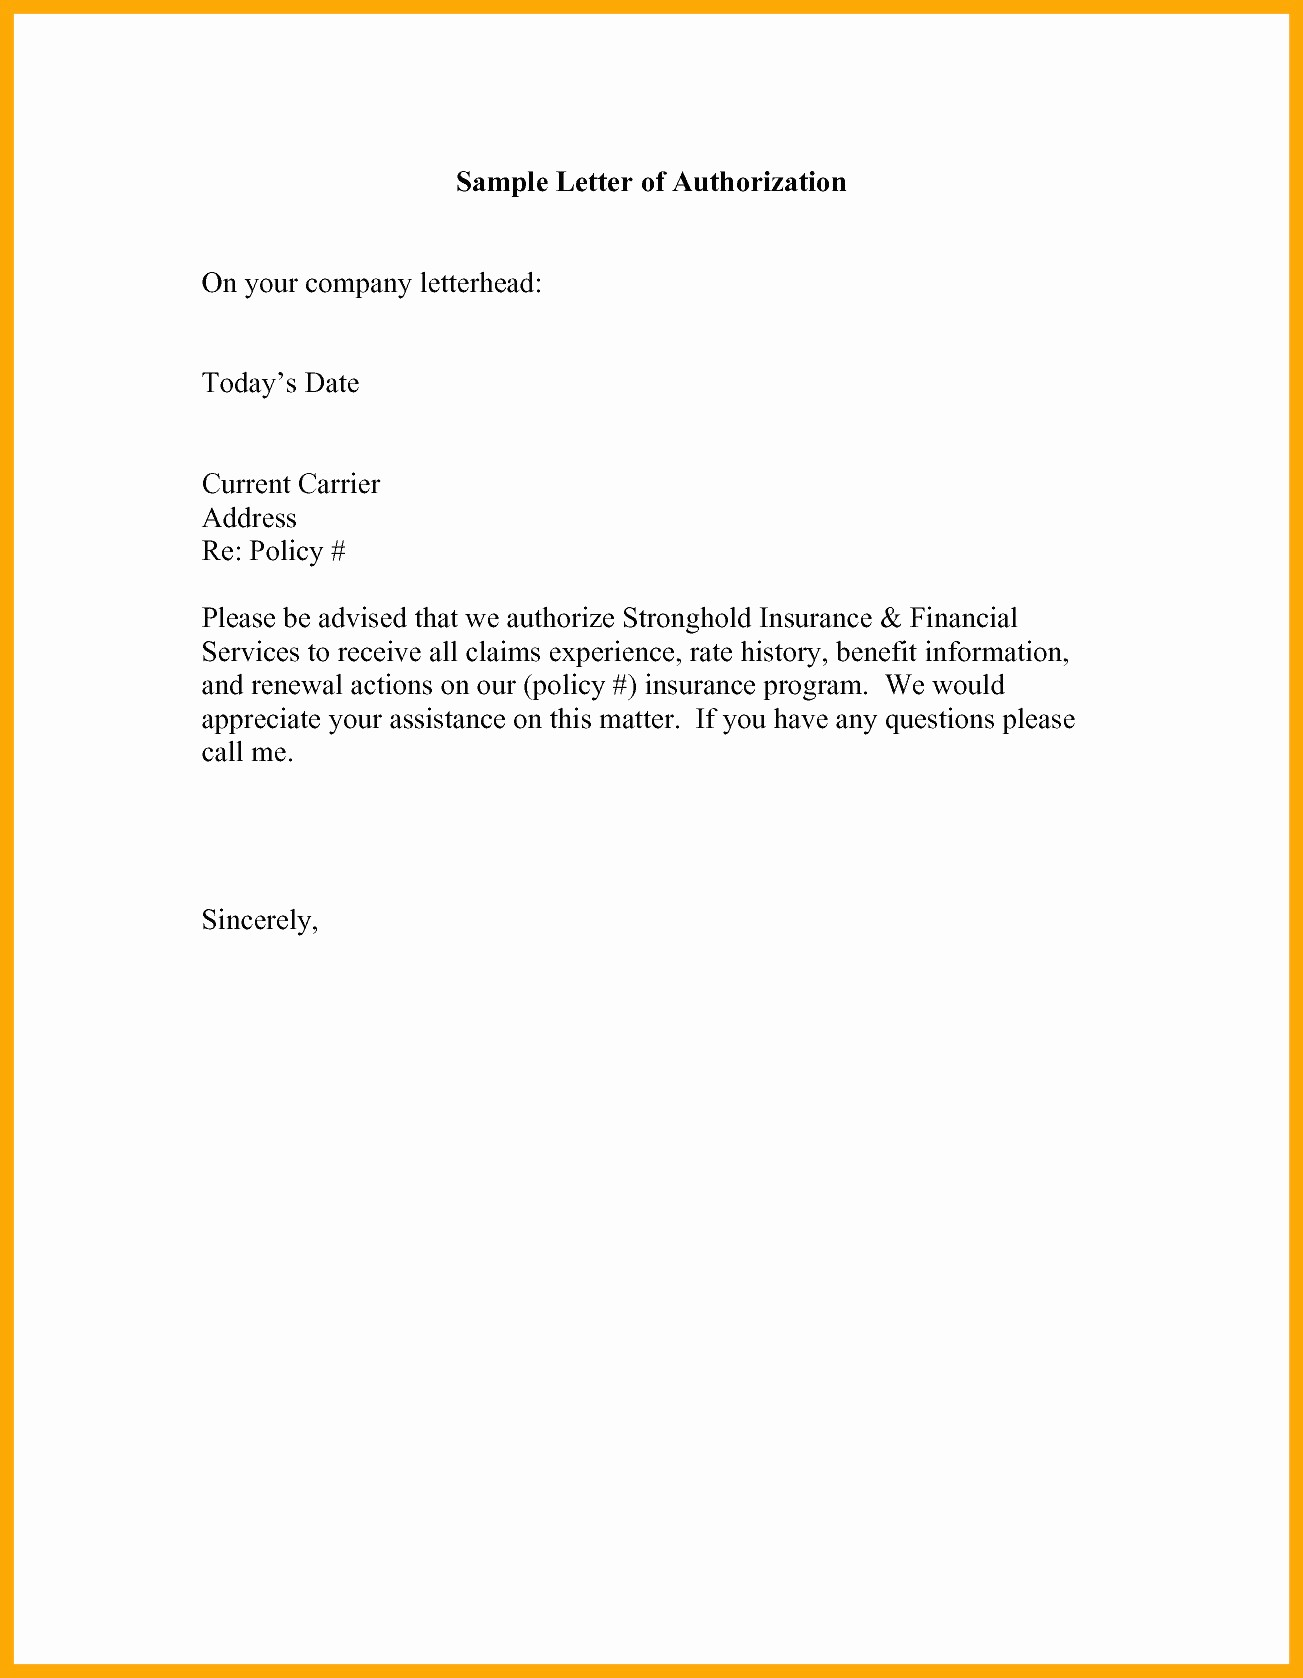 Sample Letter Of Reimbursement Money Best Of Authorization Letter to Claim Money 5 Discover China townsf